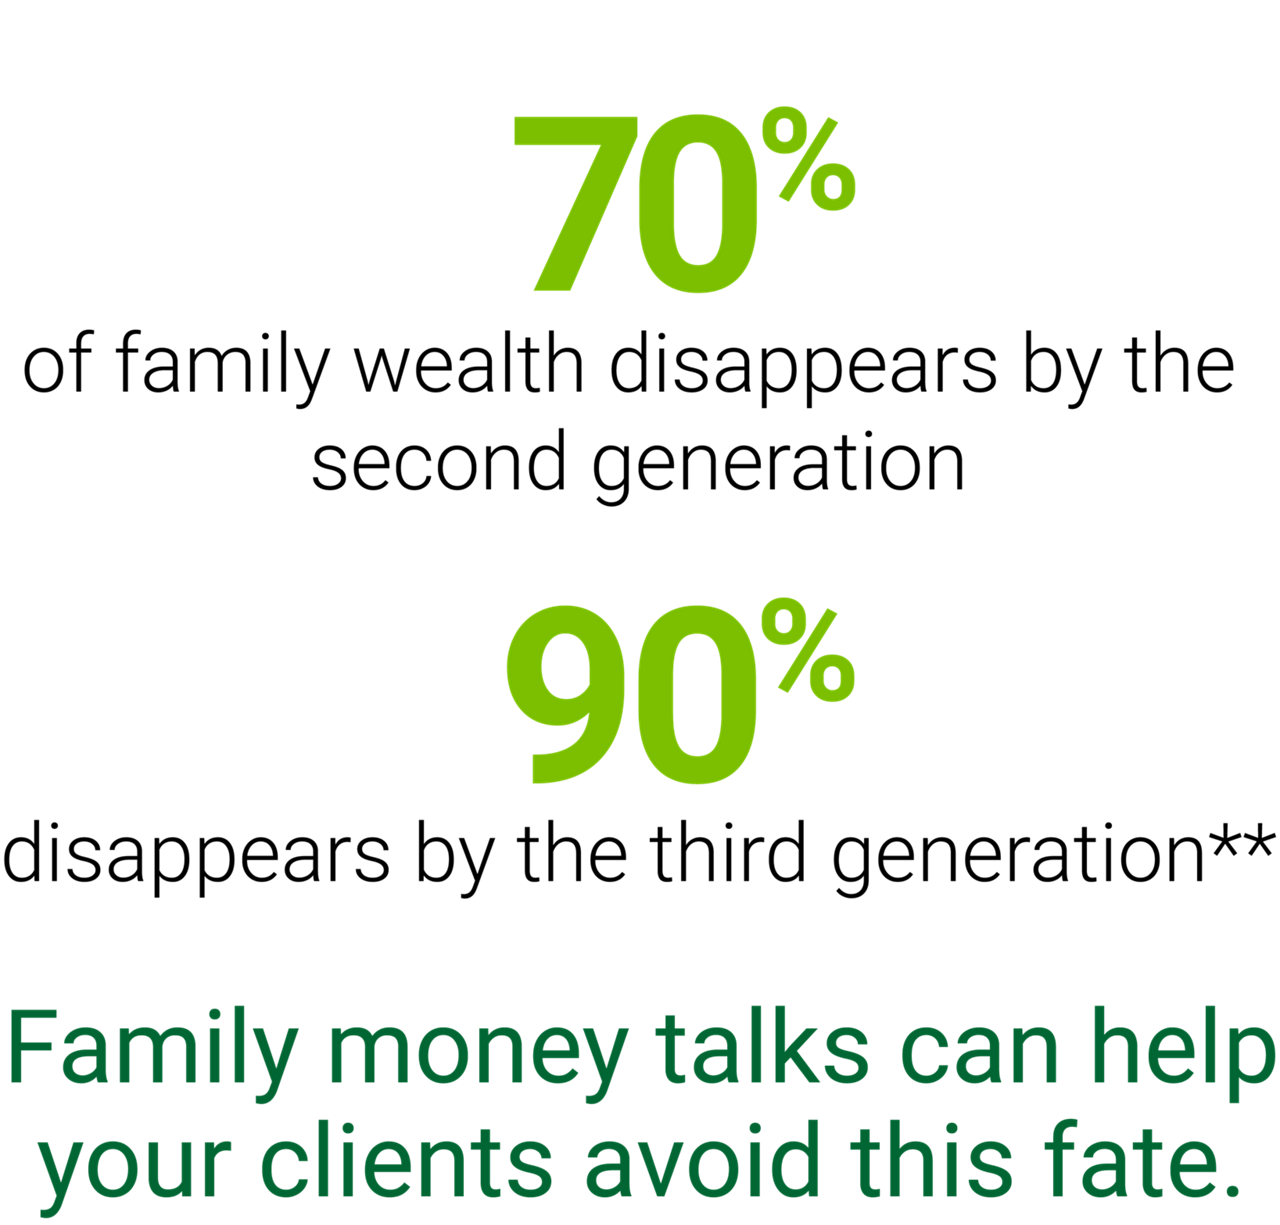 Family money talks can help your clients avoid this fate.